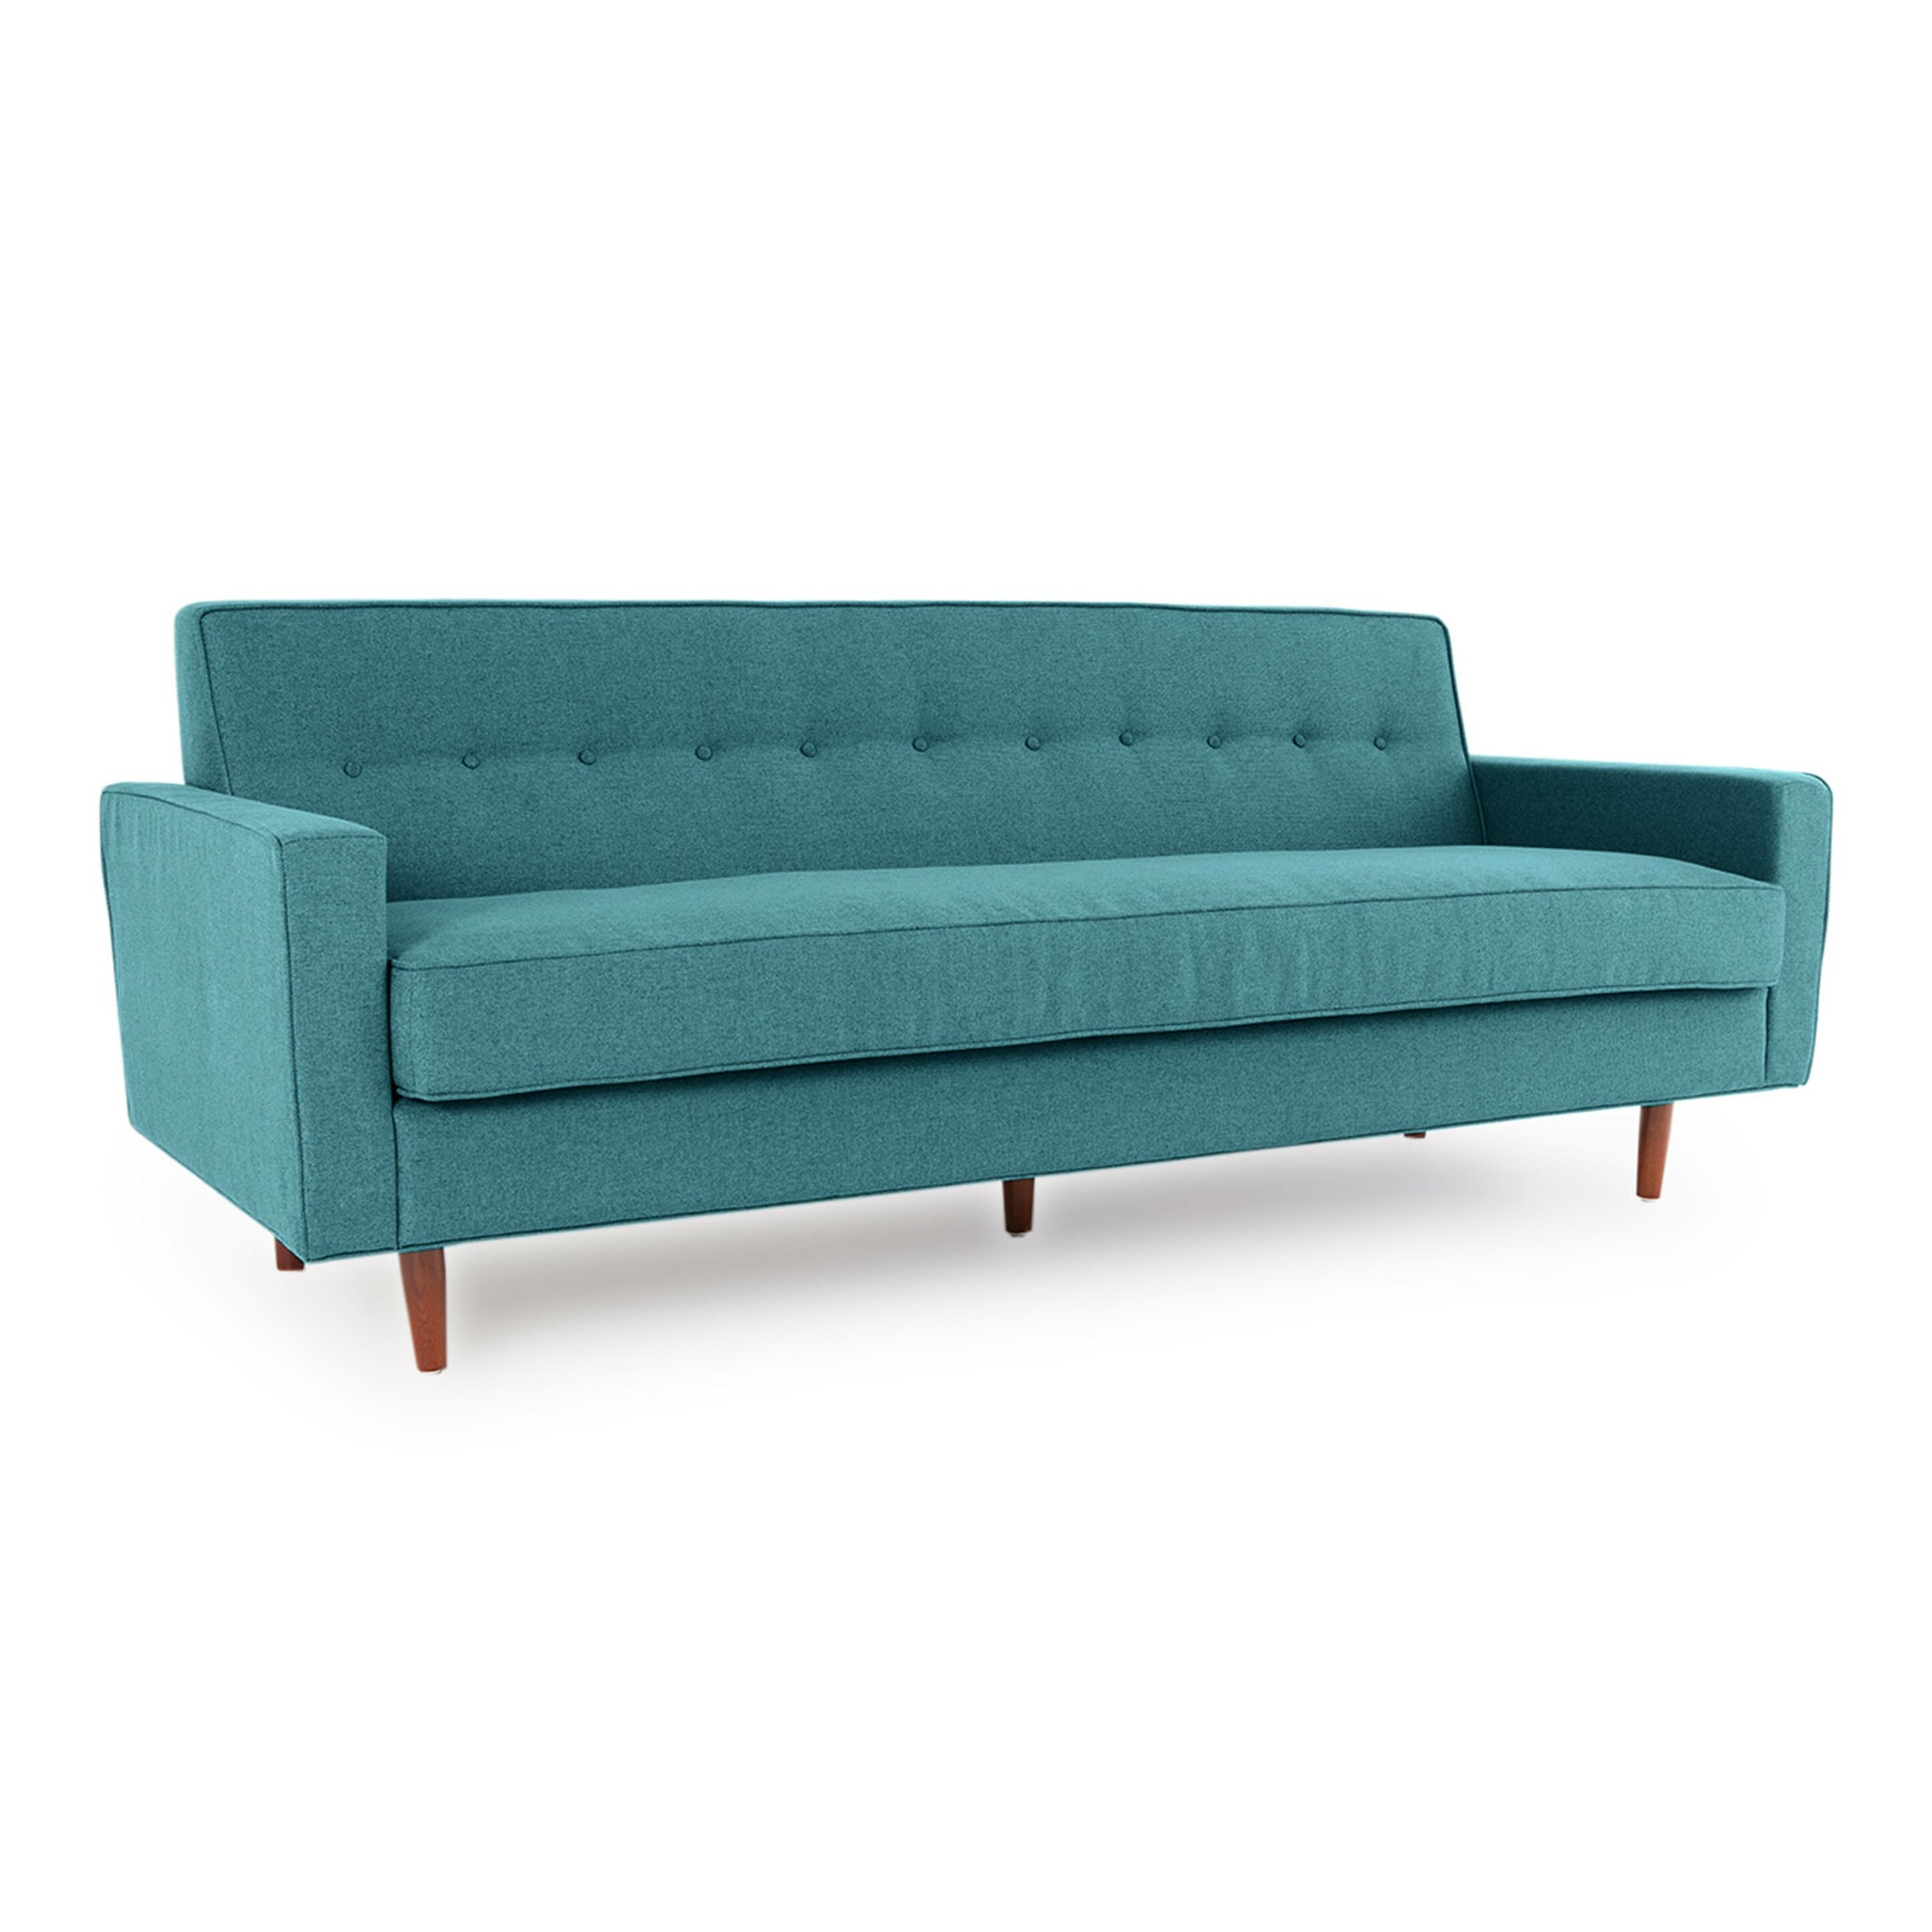 Mid Century Modern Sofas: Kardiel Eleanor Mid Century Modern Sofa & Reviews